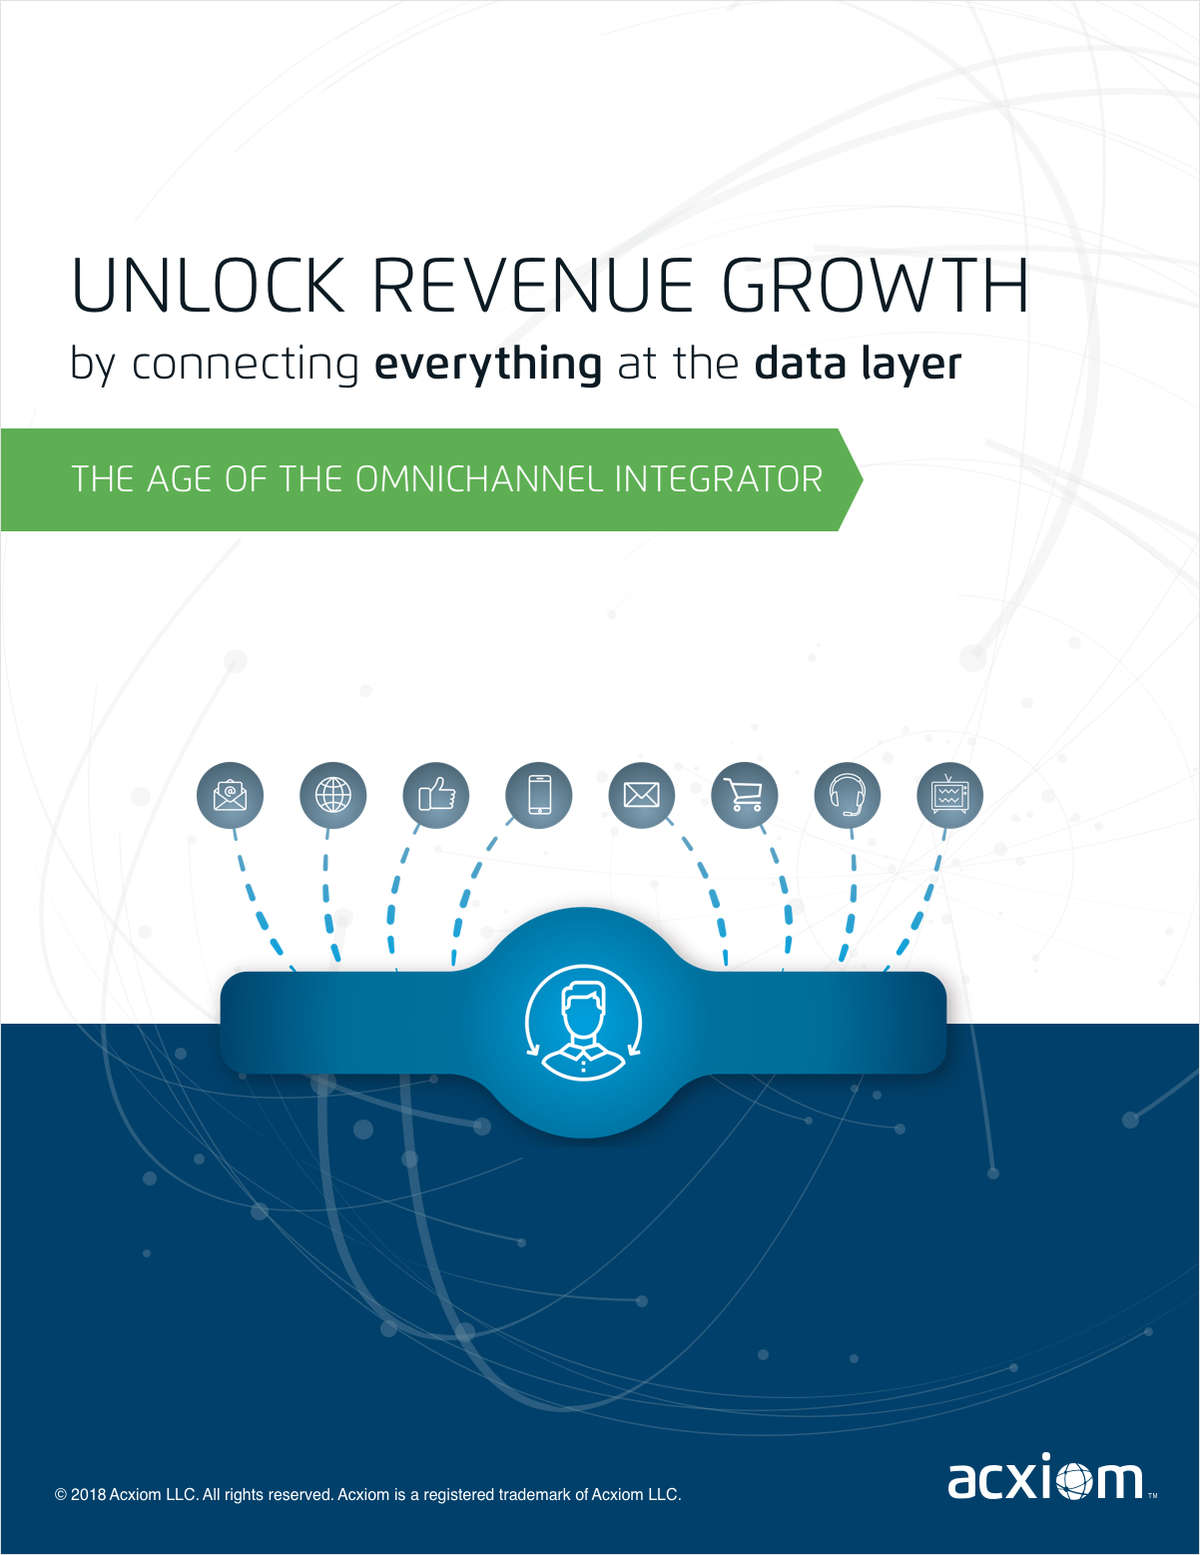 Unlock Revenue Growth by Connecting Everything at the Data Layer